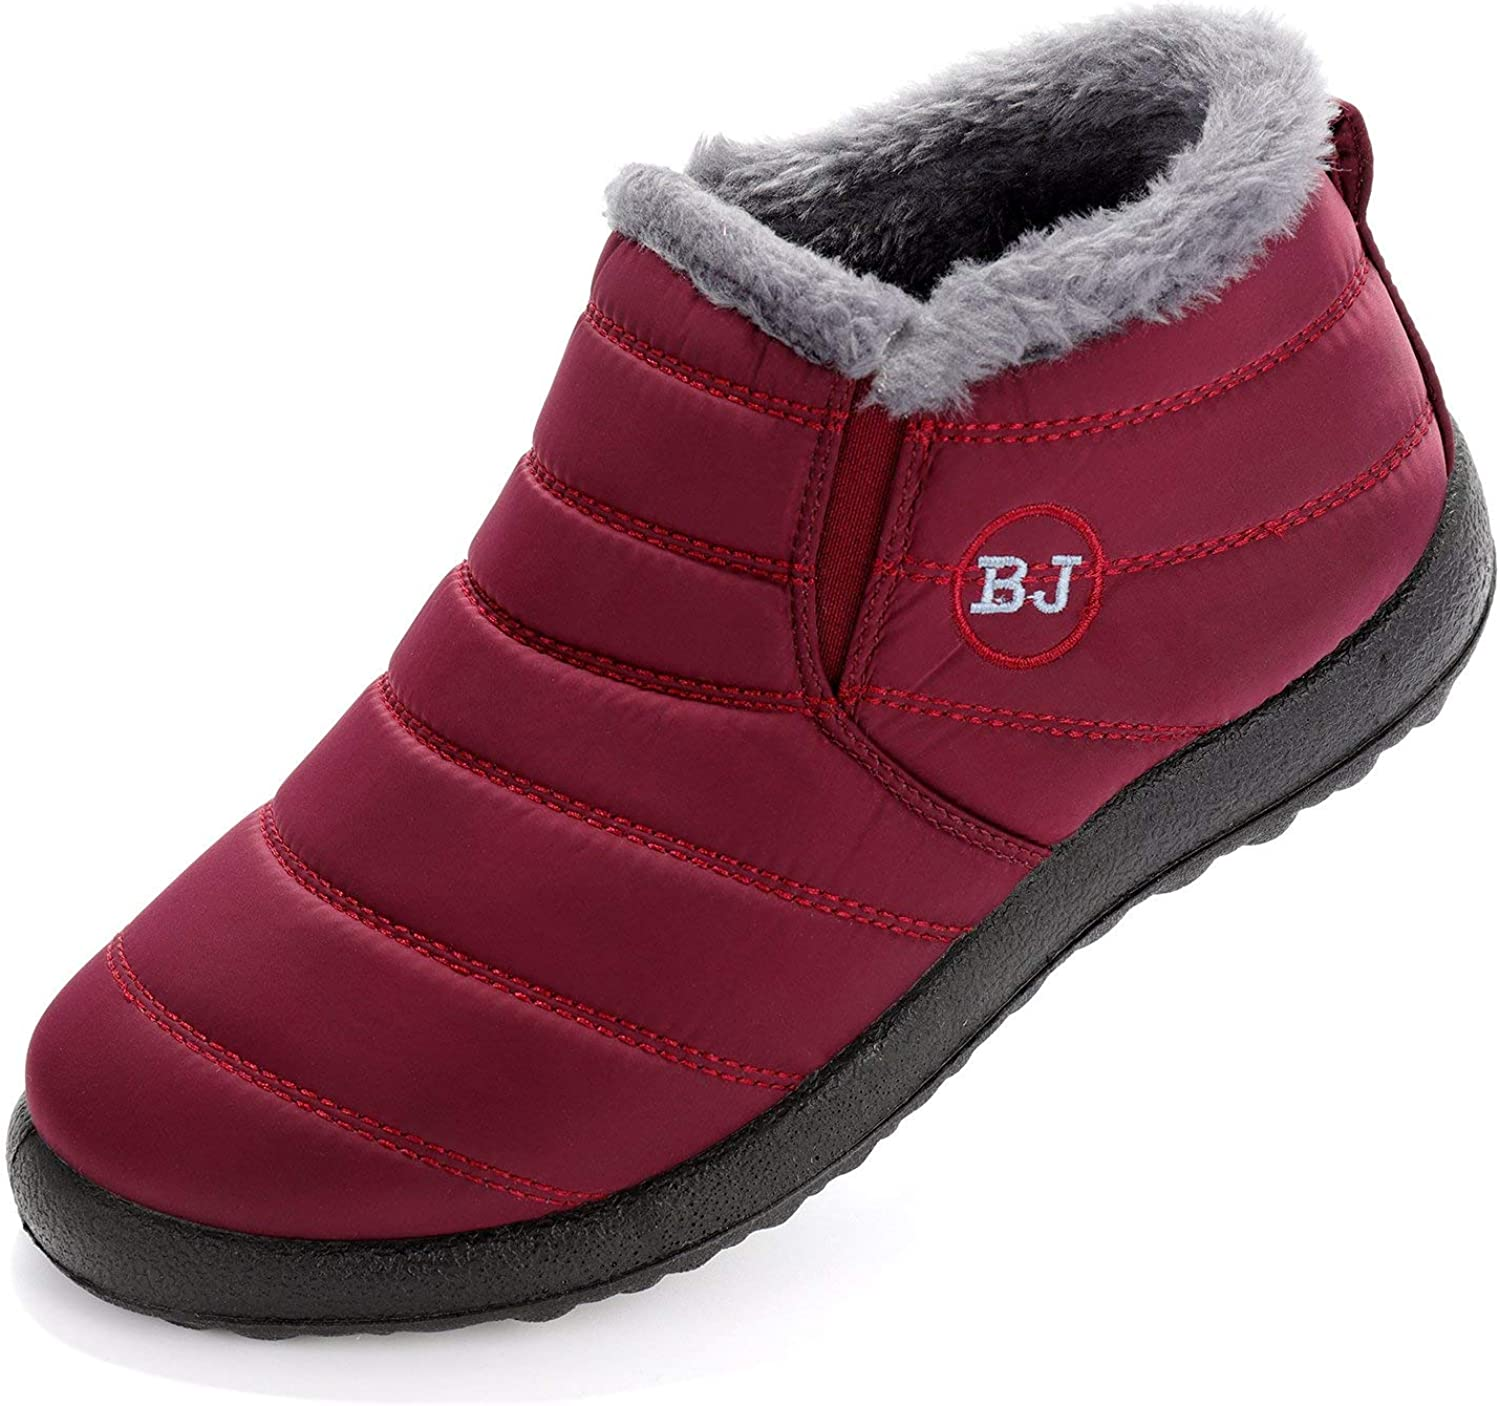 Womens Bargain Snow Boots Winter Warm Long Beach Mall Fur Ankle Lined Anti-Slip Booties